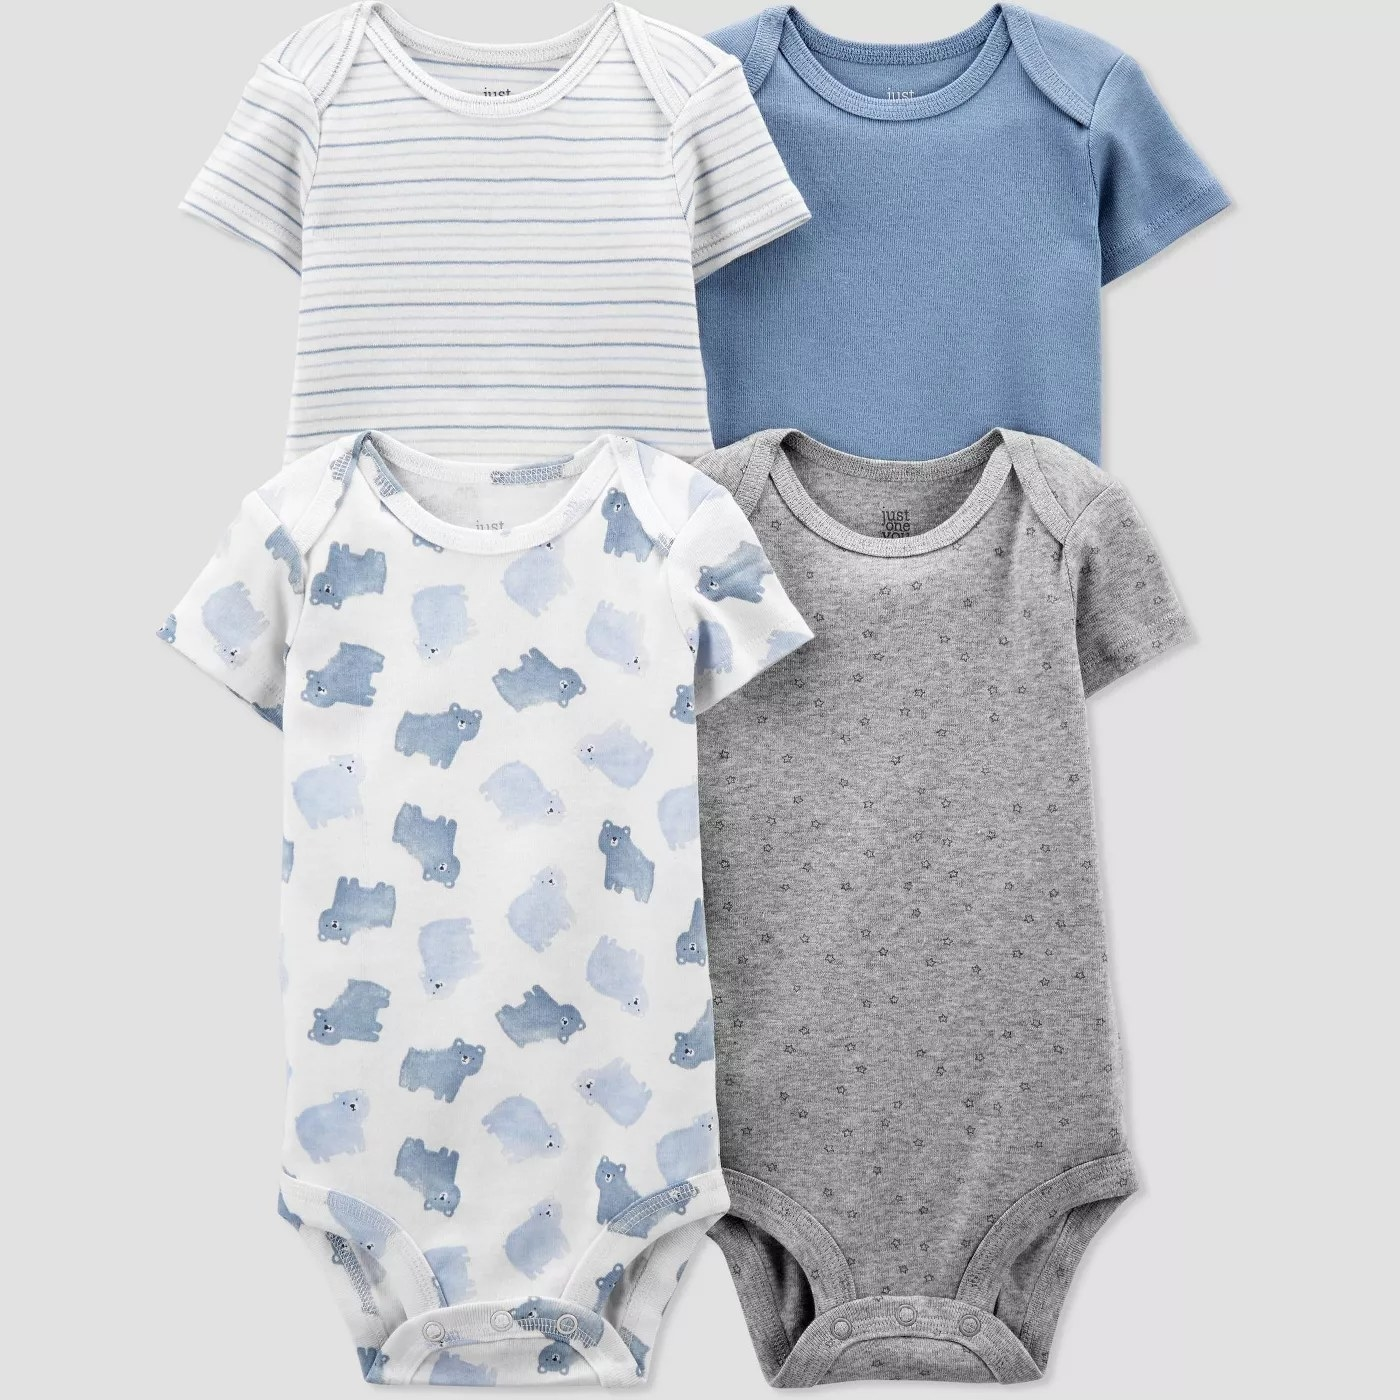 The gray, blue, striped, and bear-patterned bodysuits